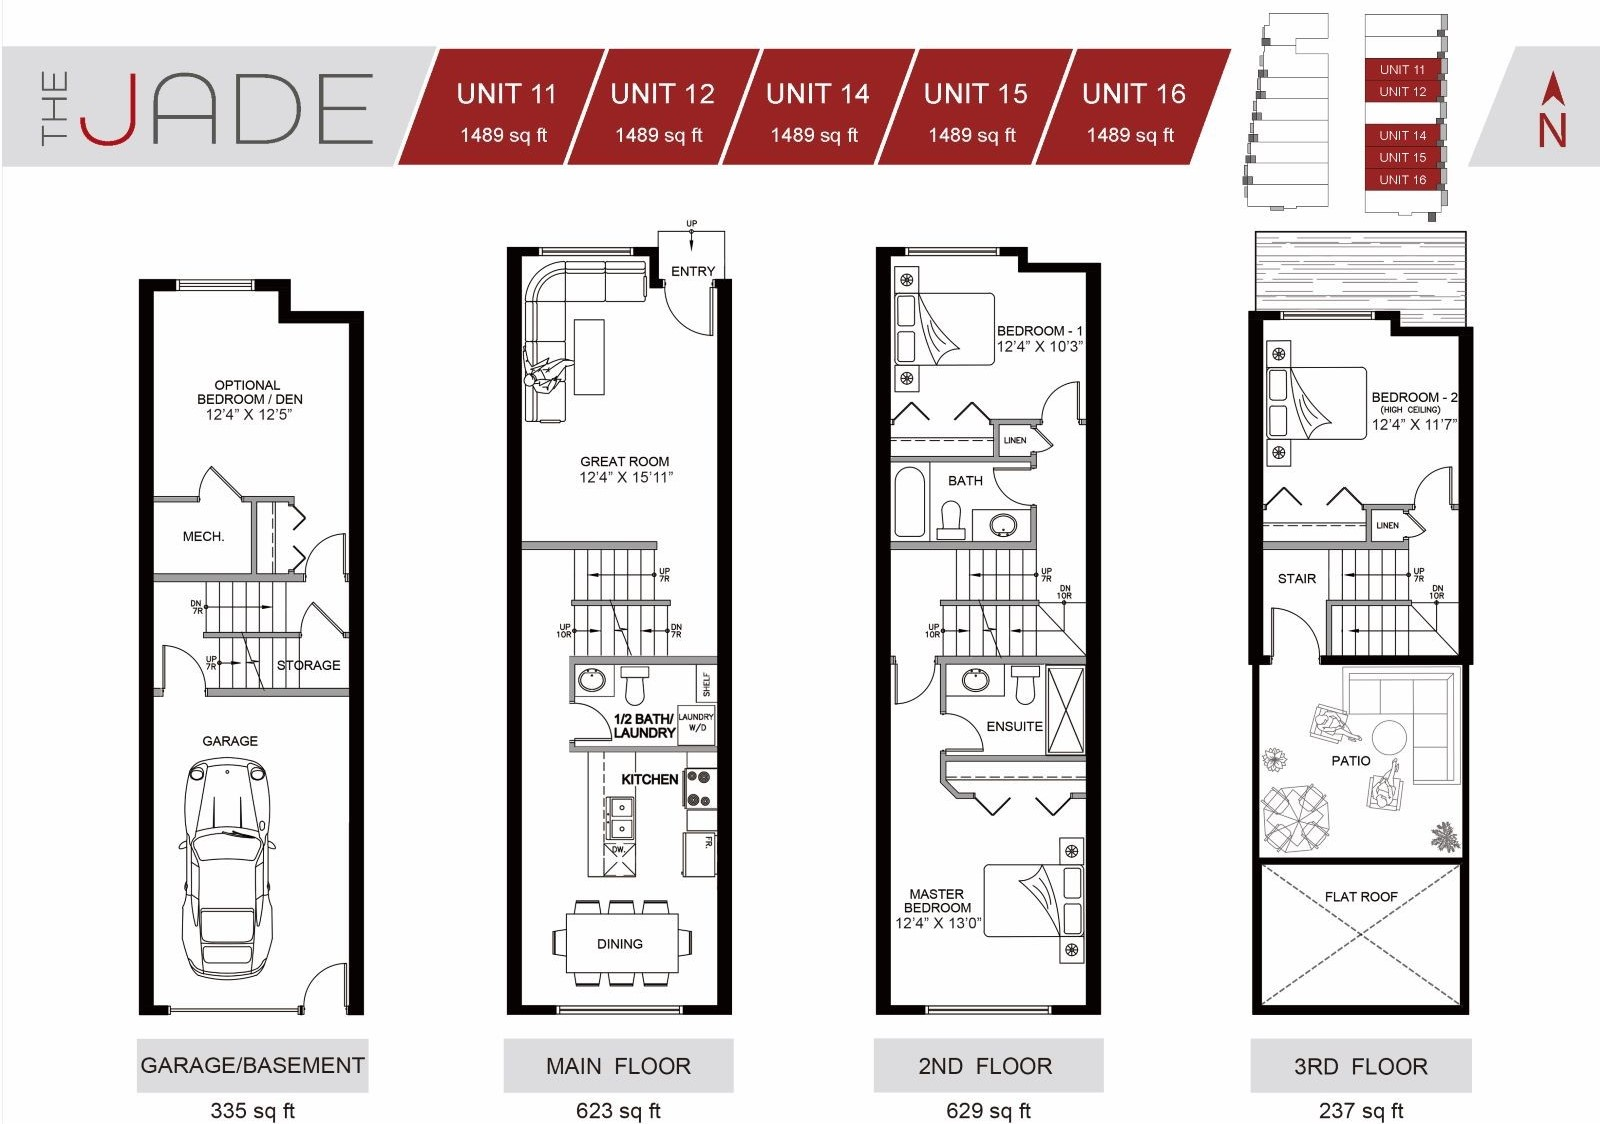 The Jade Townhome Winston Heights Unit #15 for sale